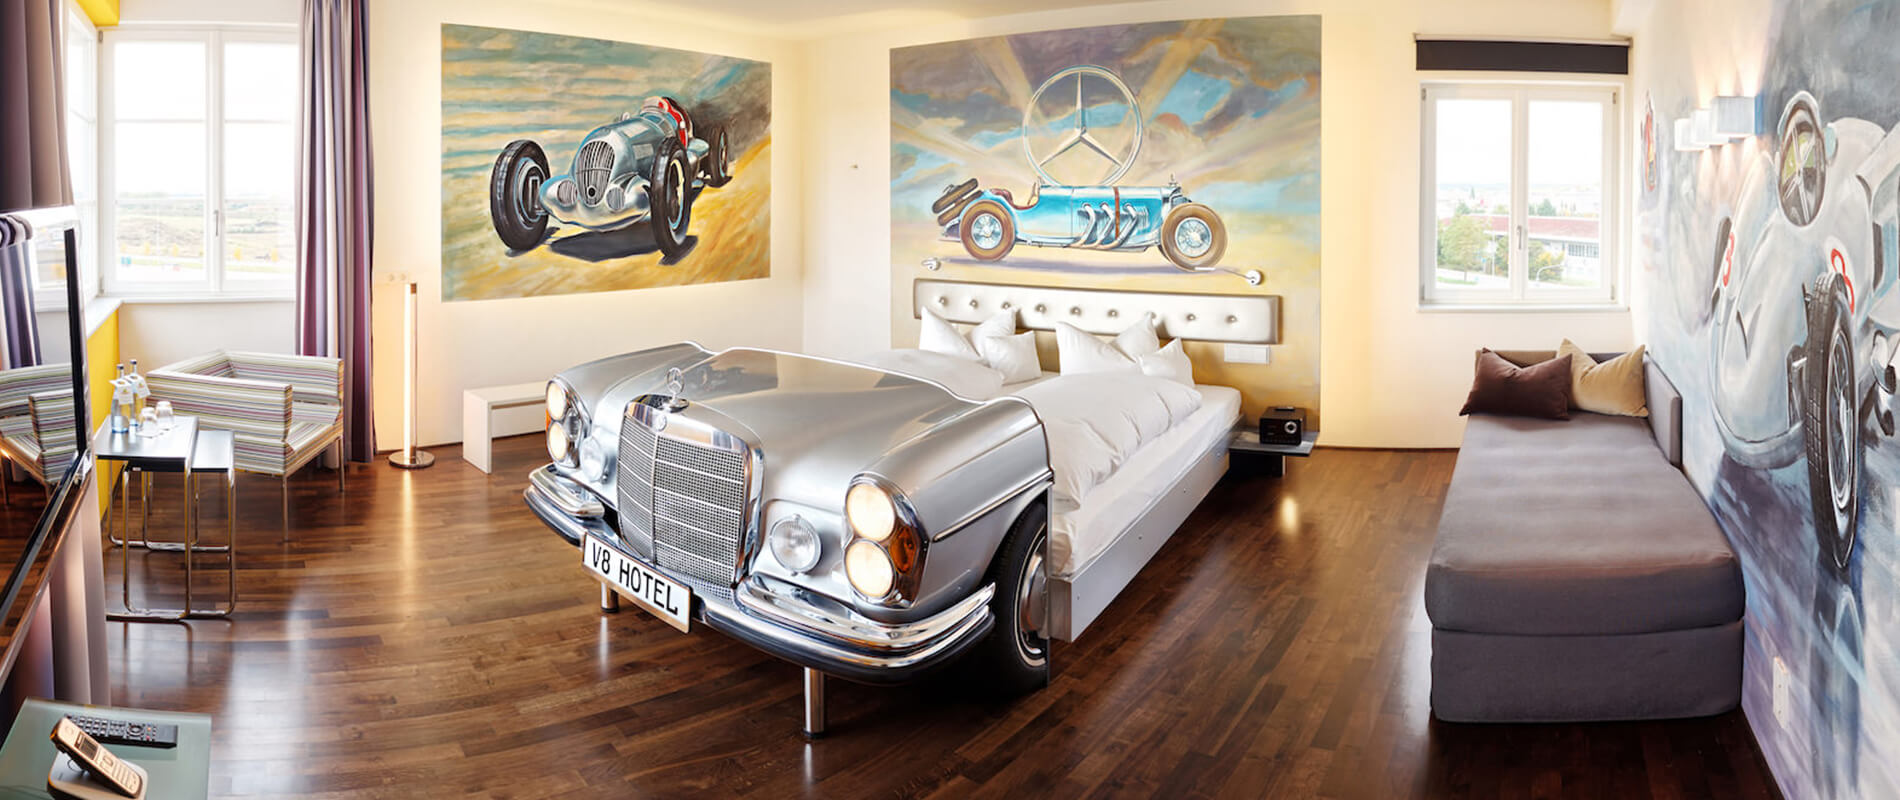 The V8 Hotel Motorworld, an Ideal Stop for Car Lovers